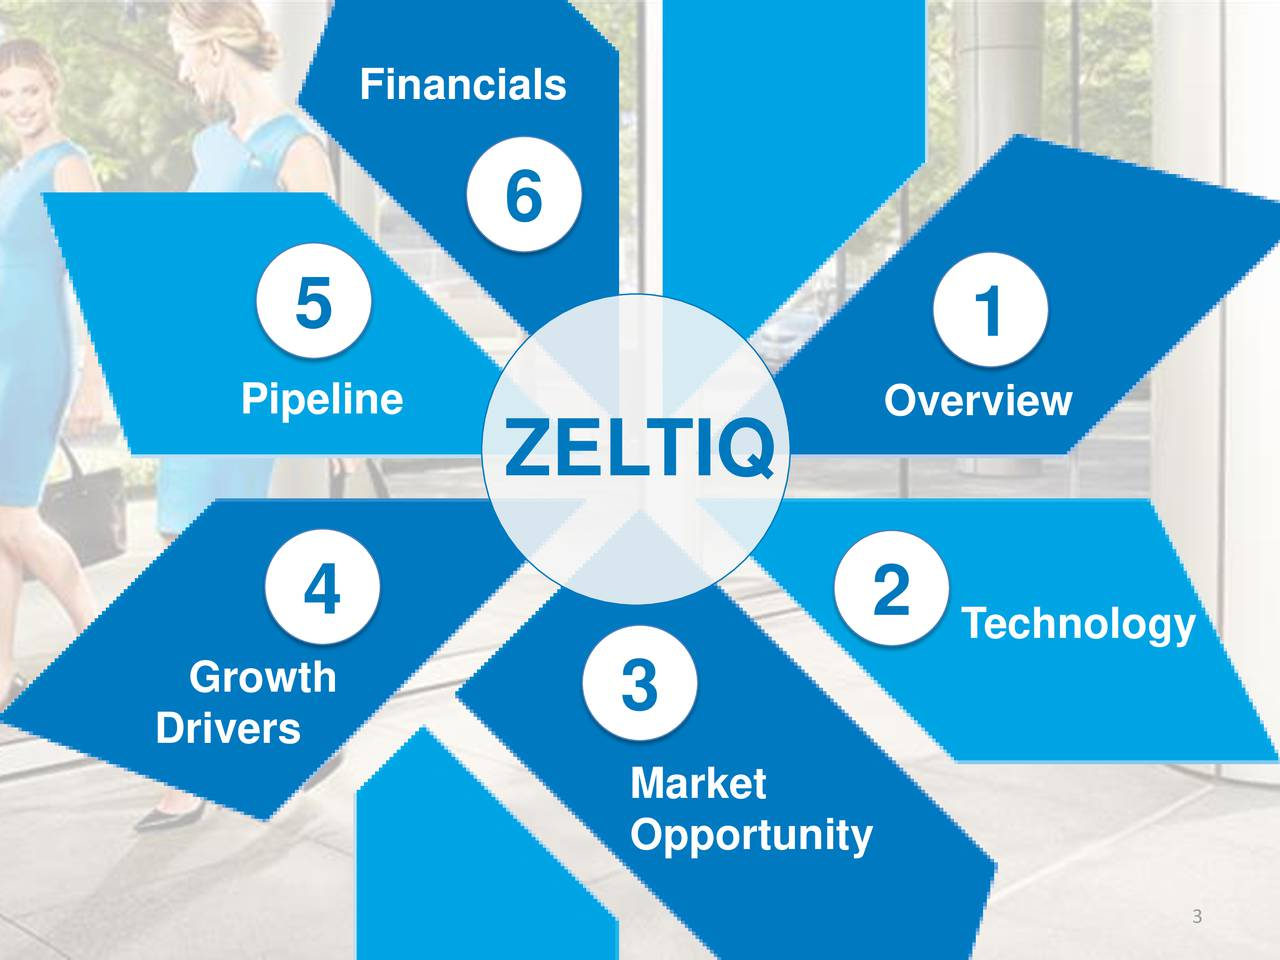 6 5 1 Pipeline Overview ZEL TIQ 4 2 Technology Growth Drivers 3 Market Opportunity 3